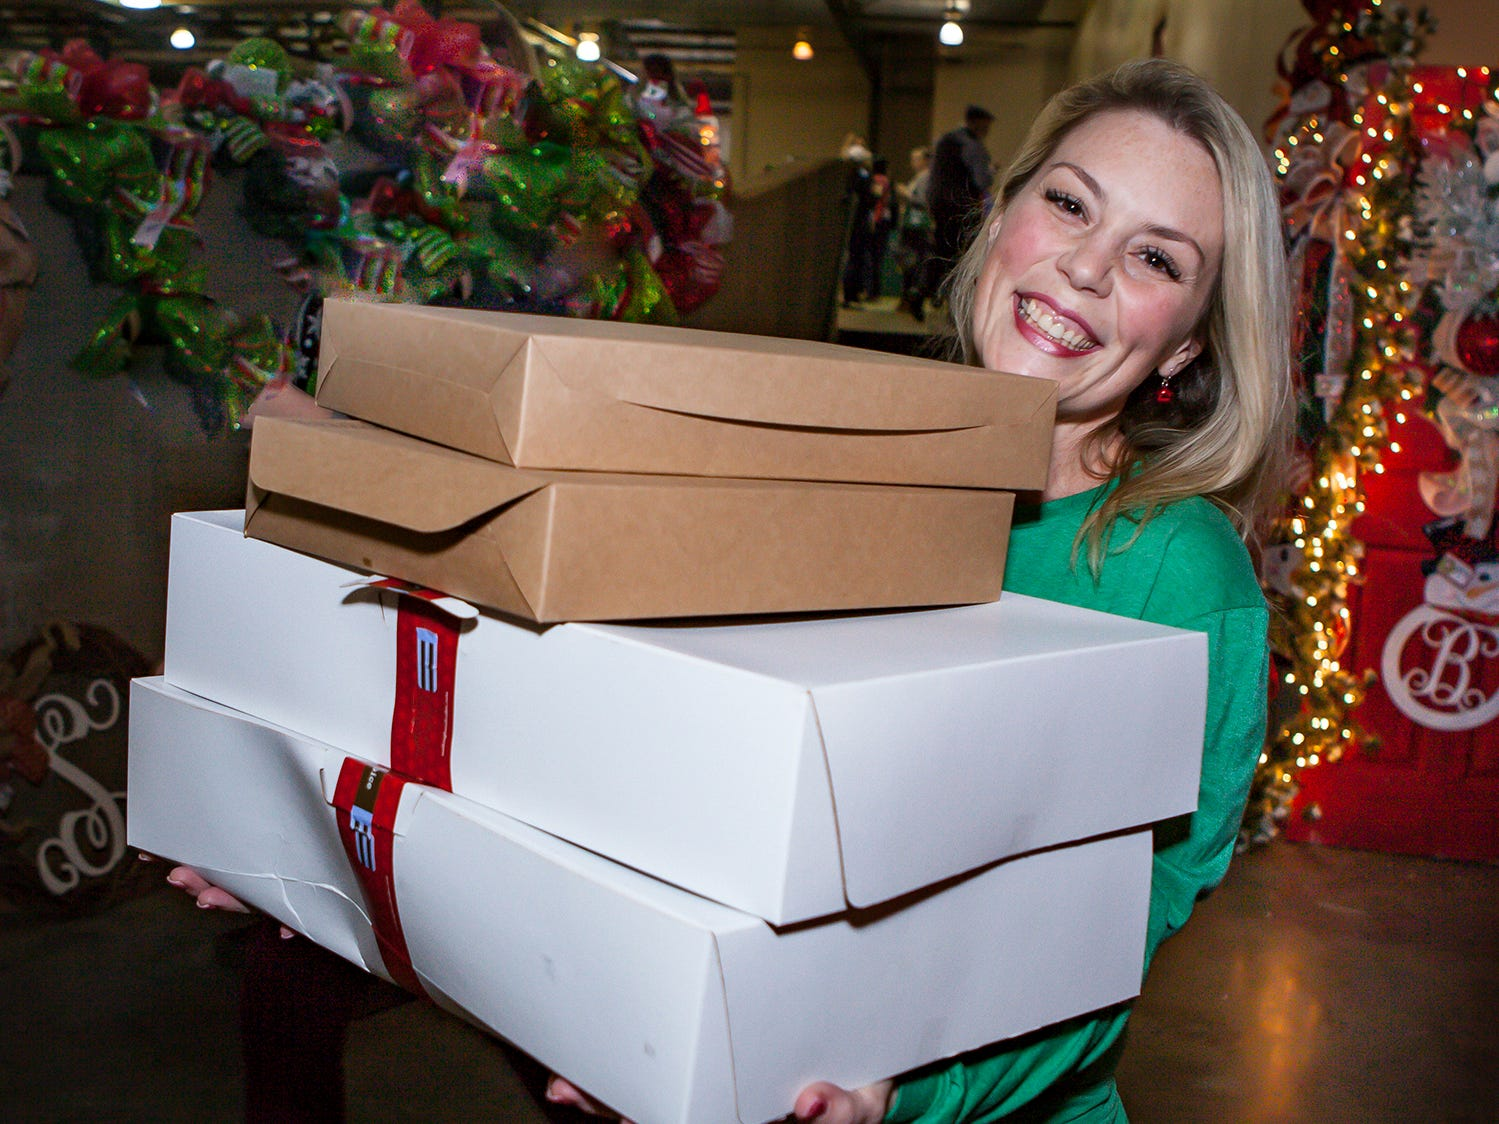 April Hoke carries boxes of treats at Mistletoe & Martinis on Friday, Nov. 30, the preview party for the 2018 Hollyday Marketplace hosted by the Junior League of Murfreesboro.